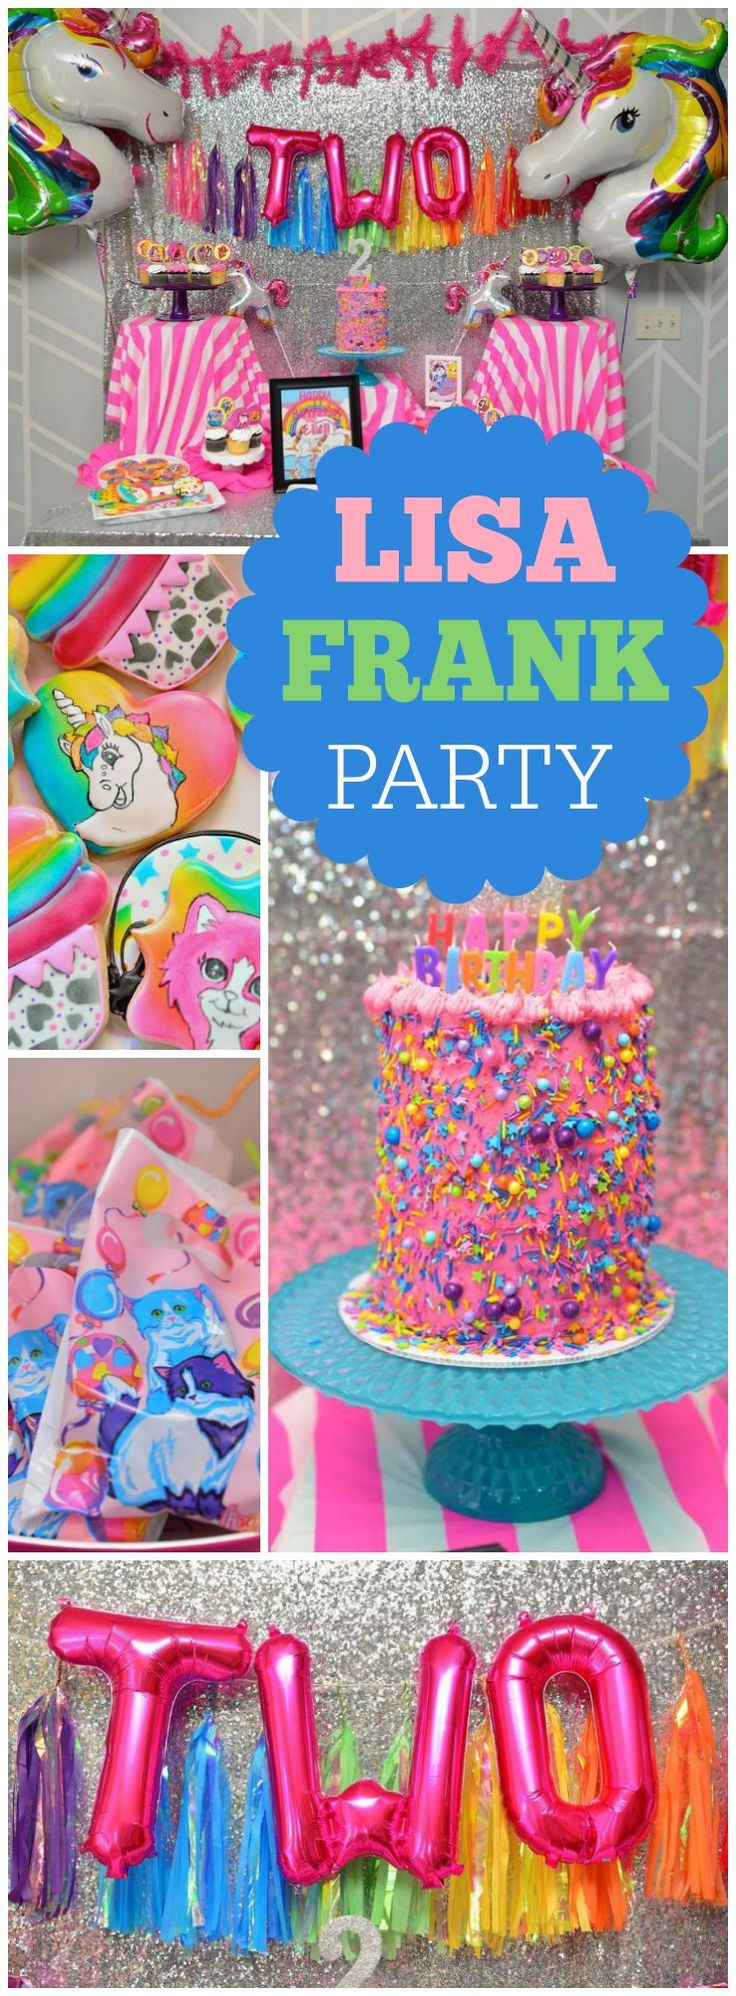 A Lisa Frank inspired party with unicorns, puppies, kittens and rainbows! See more party ideas at CatchMyParty.com!